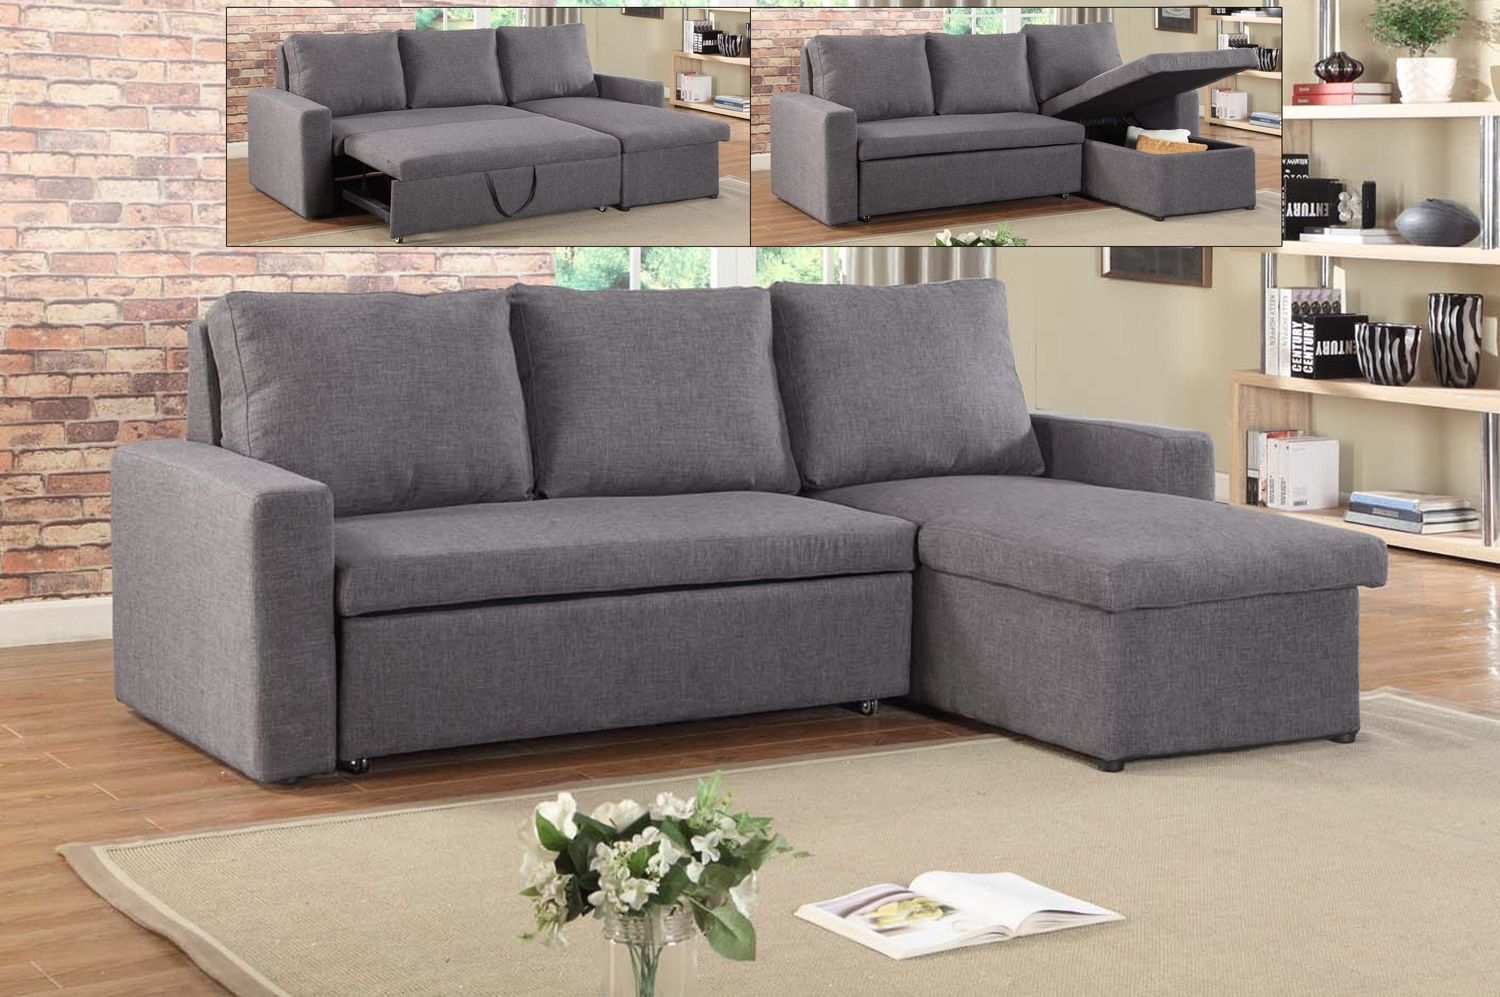 Picture of: If 9000 Sectional Sofa Bed With Reversible Chaise